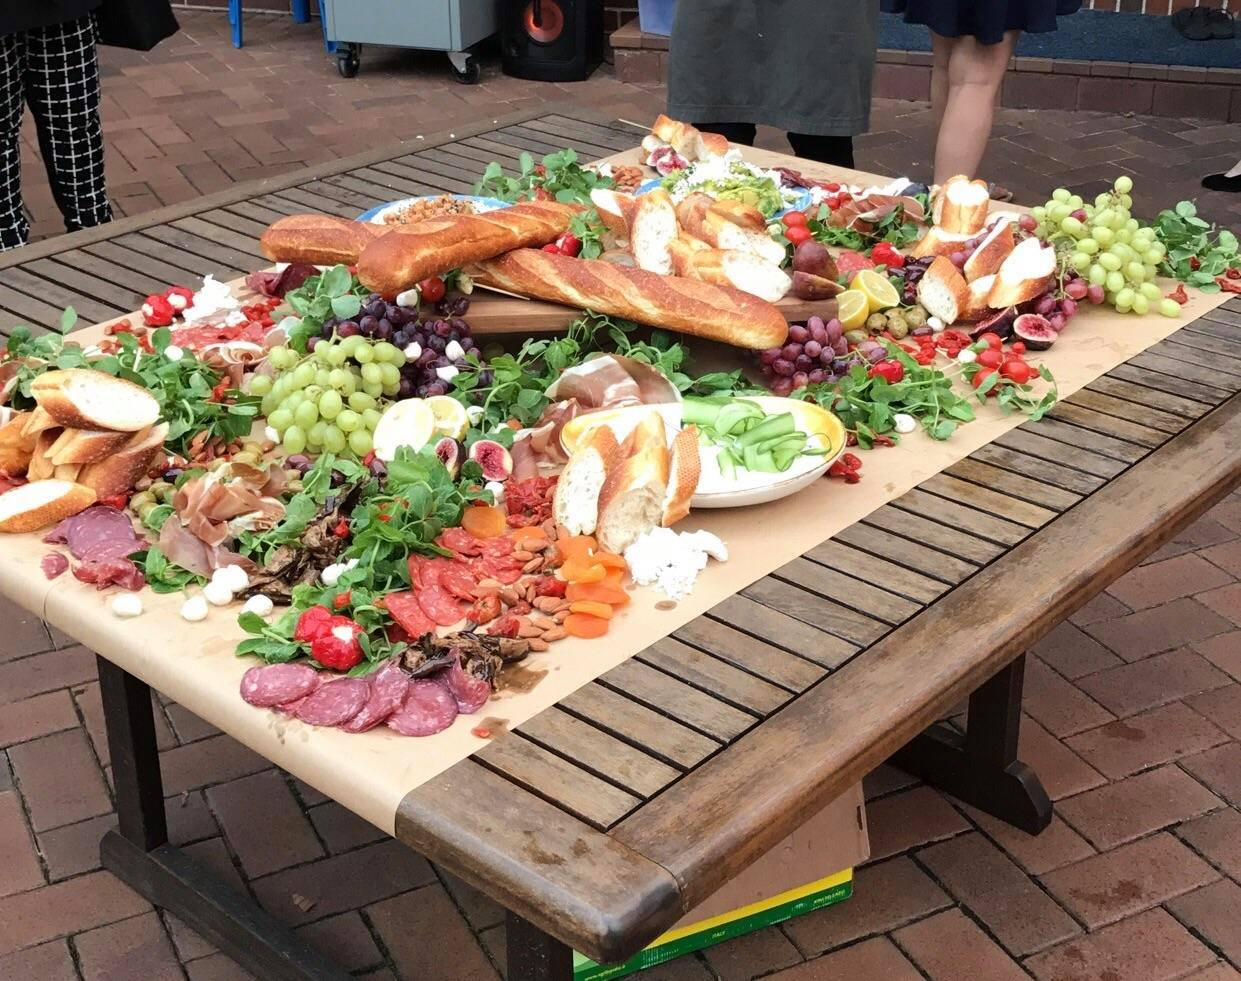 assortment of bread, italian cured meats, grapes, peppers, cheeses on large wood table.